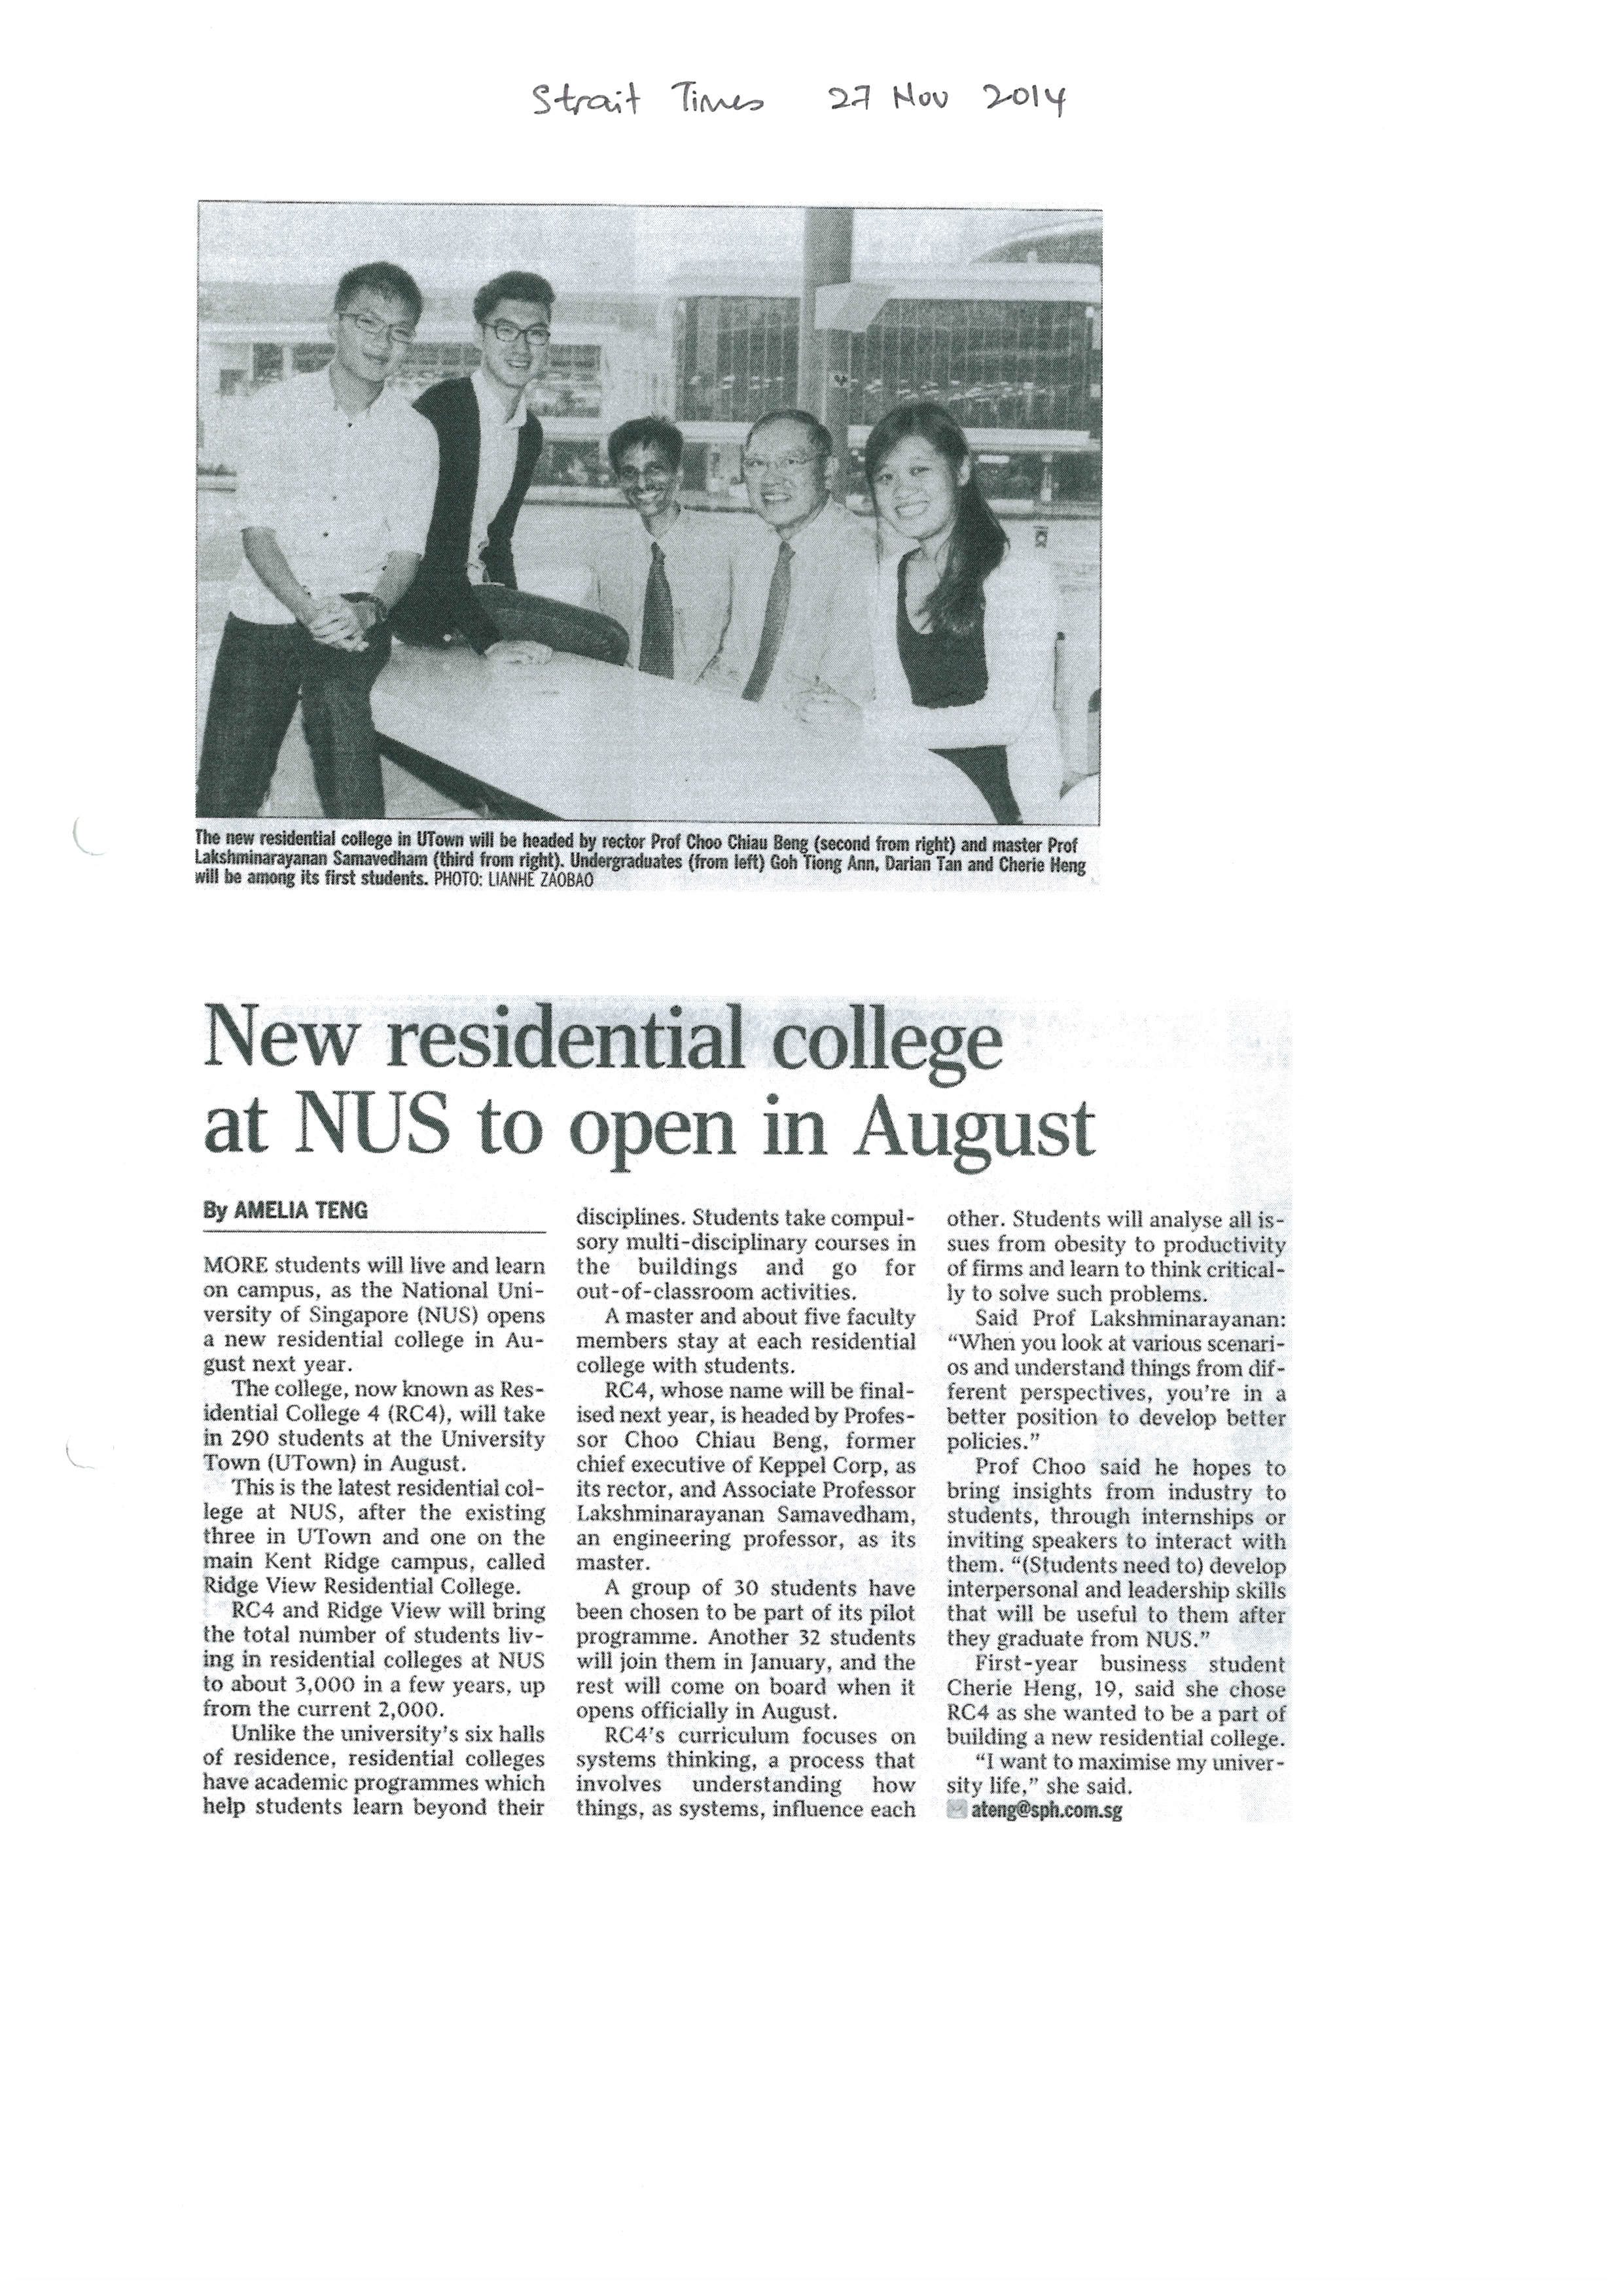 New residential college at NUS to open in August